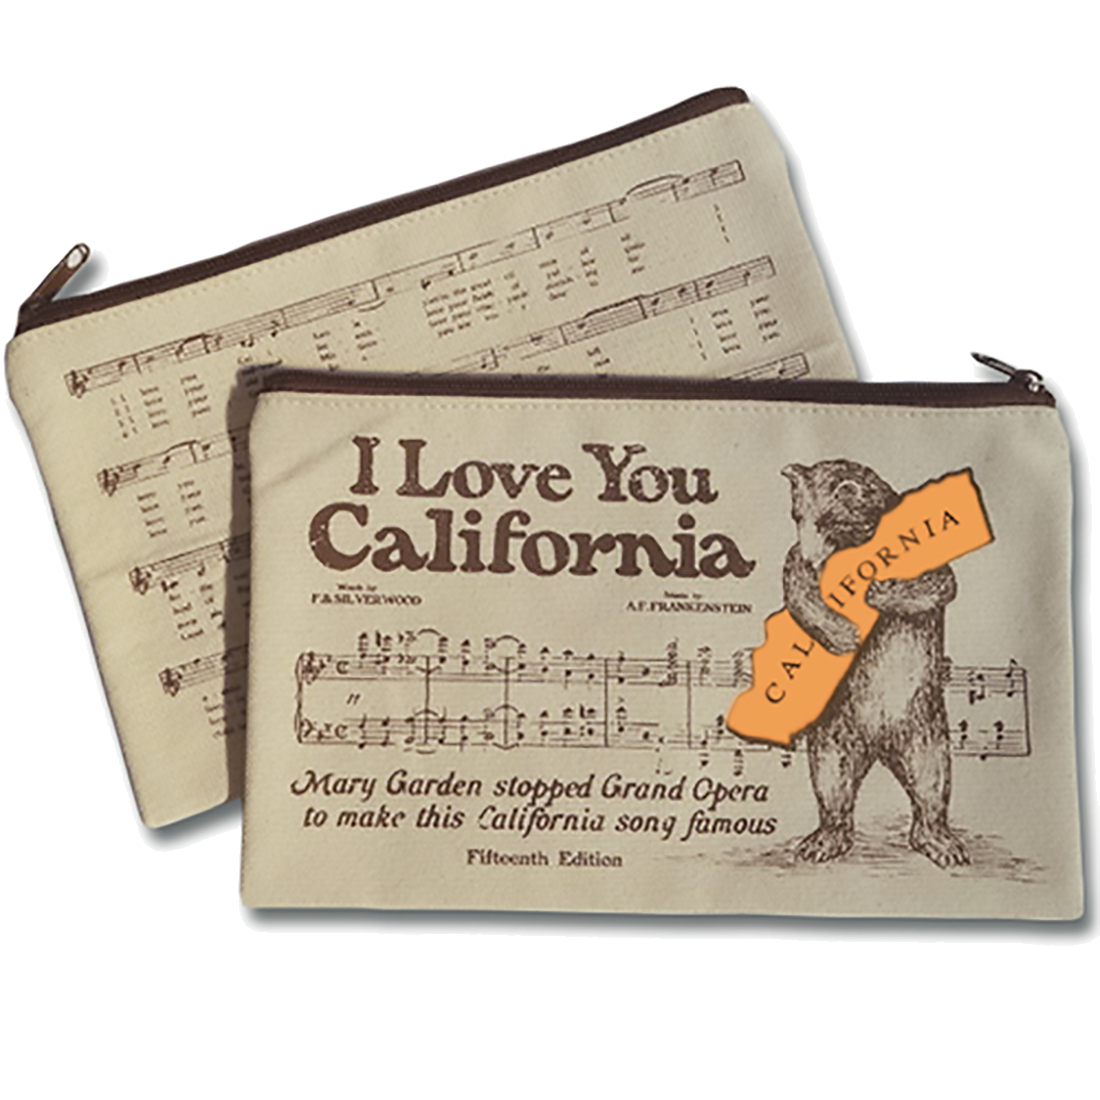 I Love You California Sheet Music Zipper Pouch